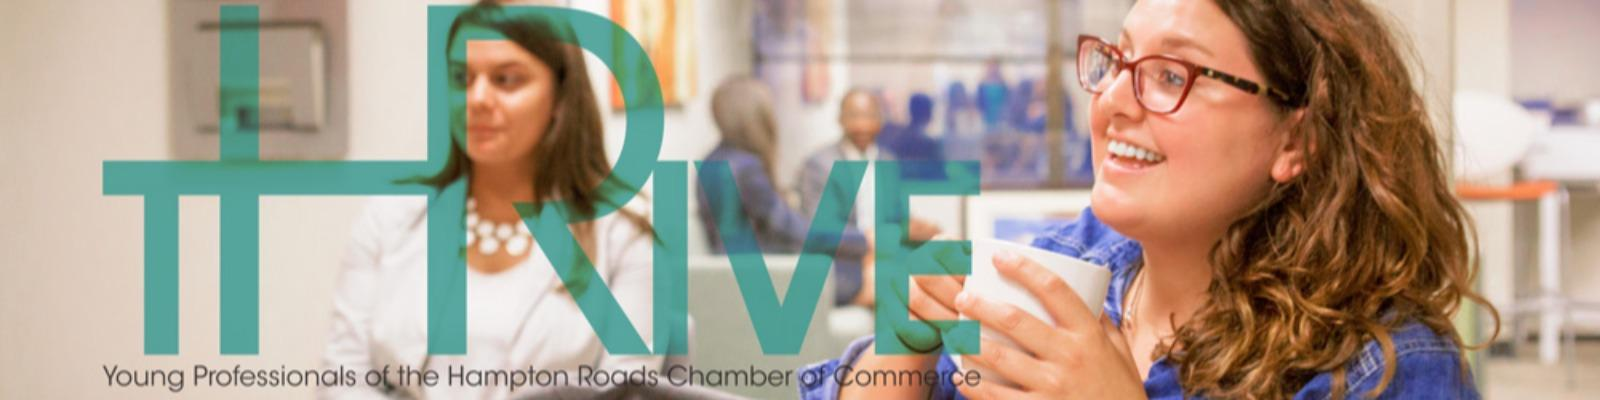 tHRive - Young Professionals of the Hampton Roads Chamber Cover